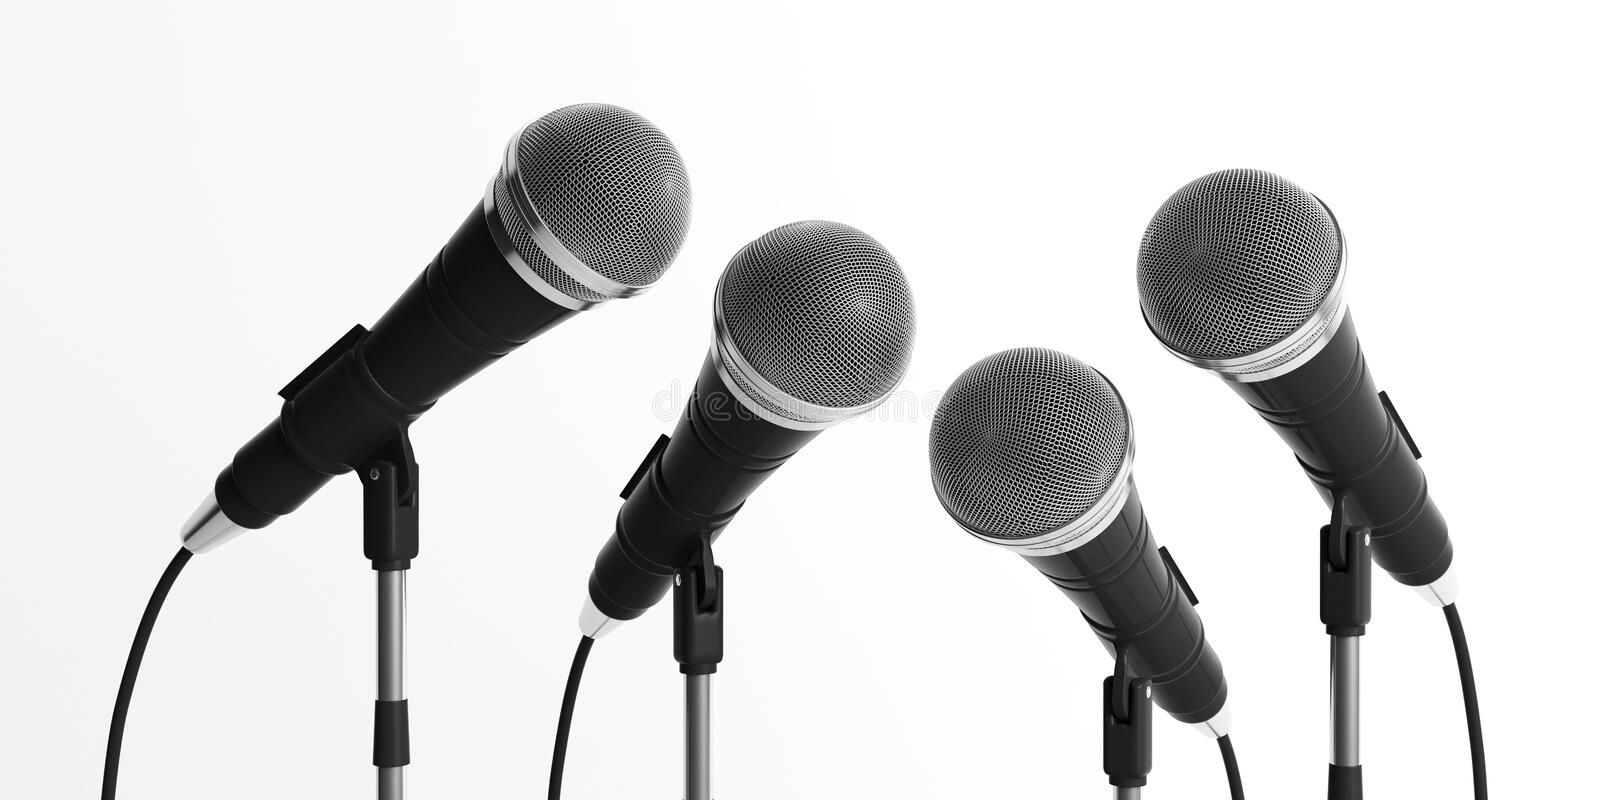 Microphones on stands isolated on white background. 3d illustration royalty free illustration